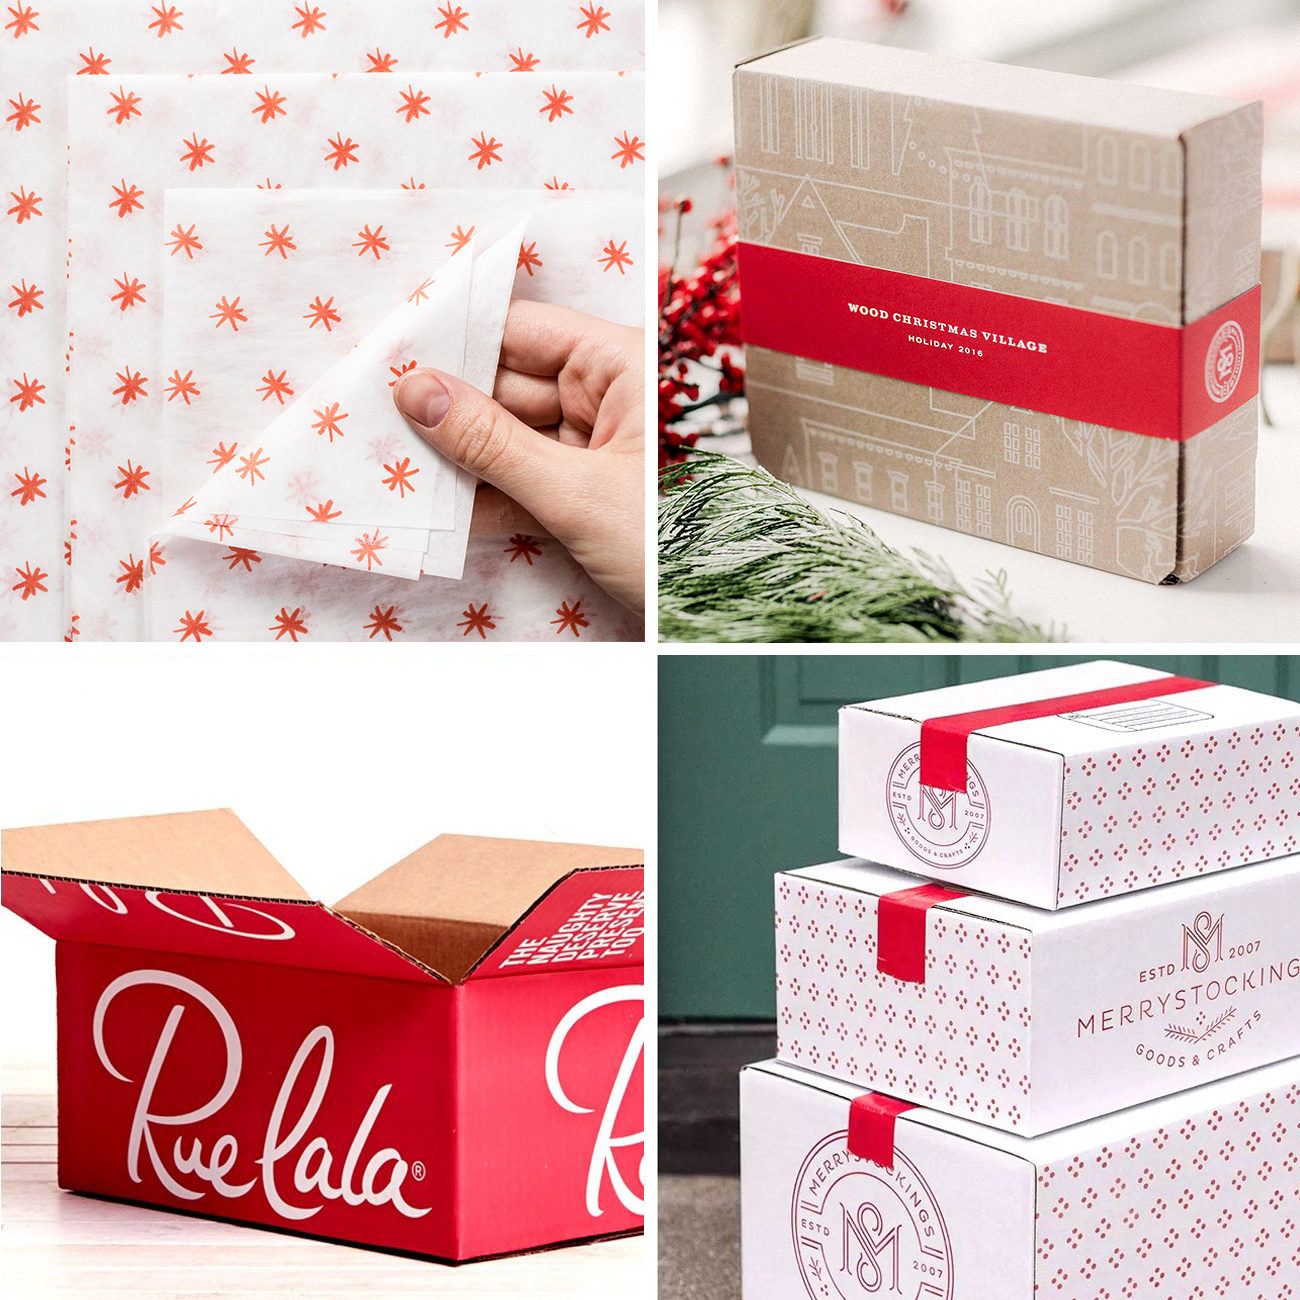 90 Ideas To Spruce Up Your Holiday Packaging Design Lumi Blog